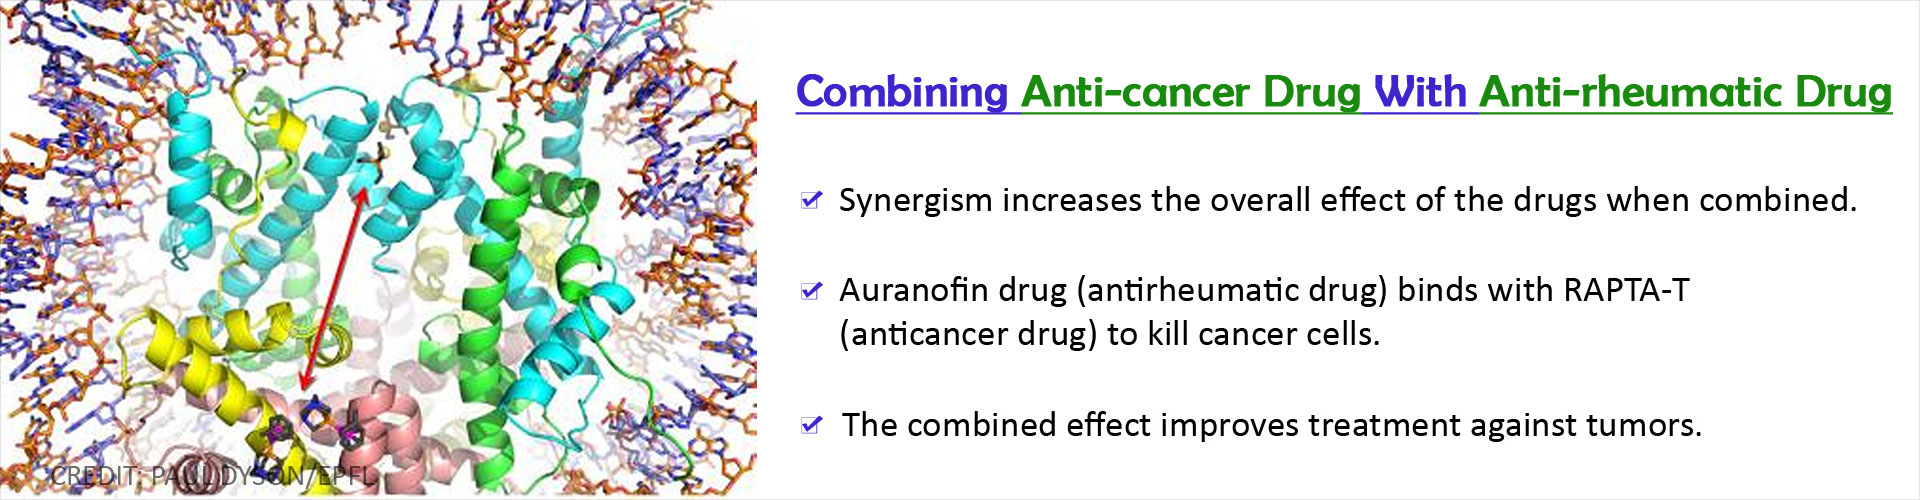 Combination of Anticancer Drug and Antirheumatic Drug Helps Kill Cancer Cells